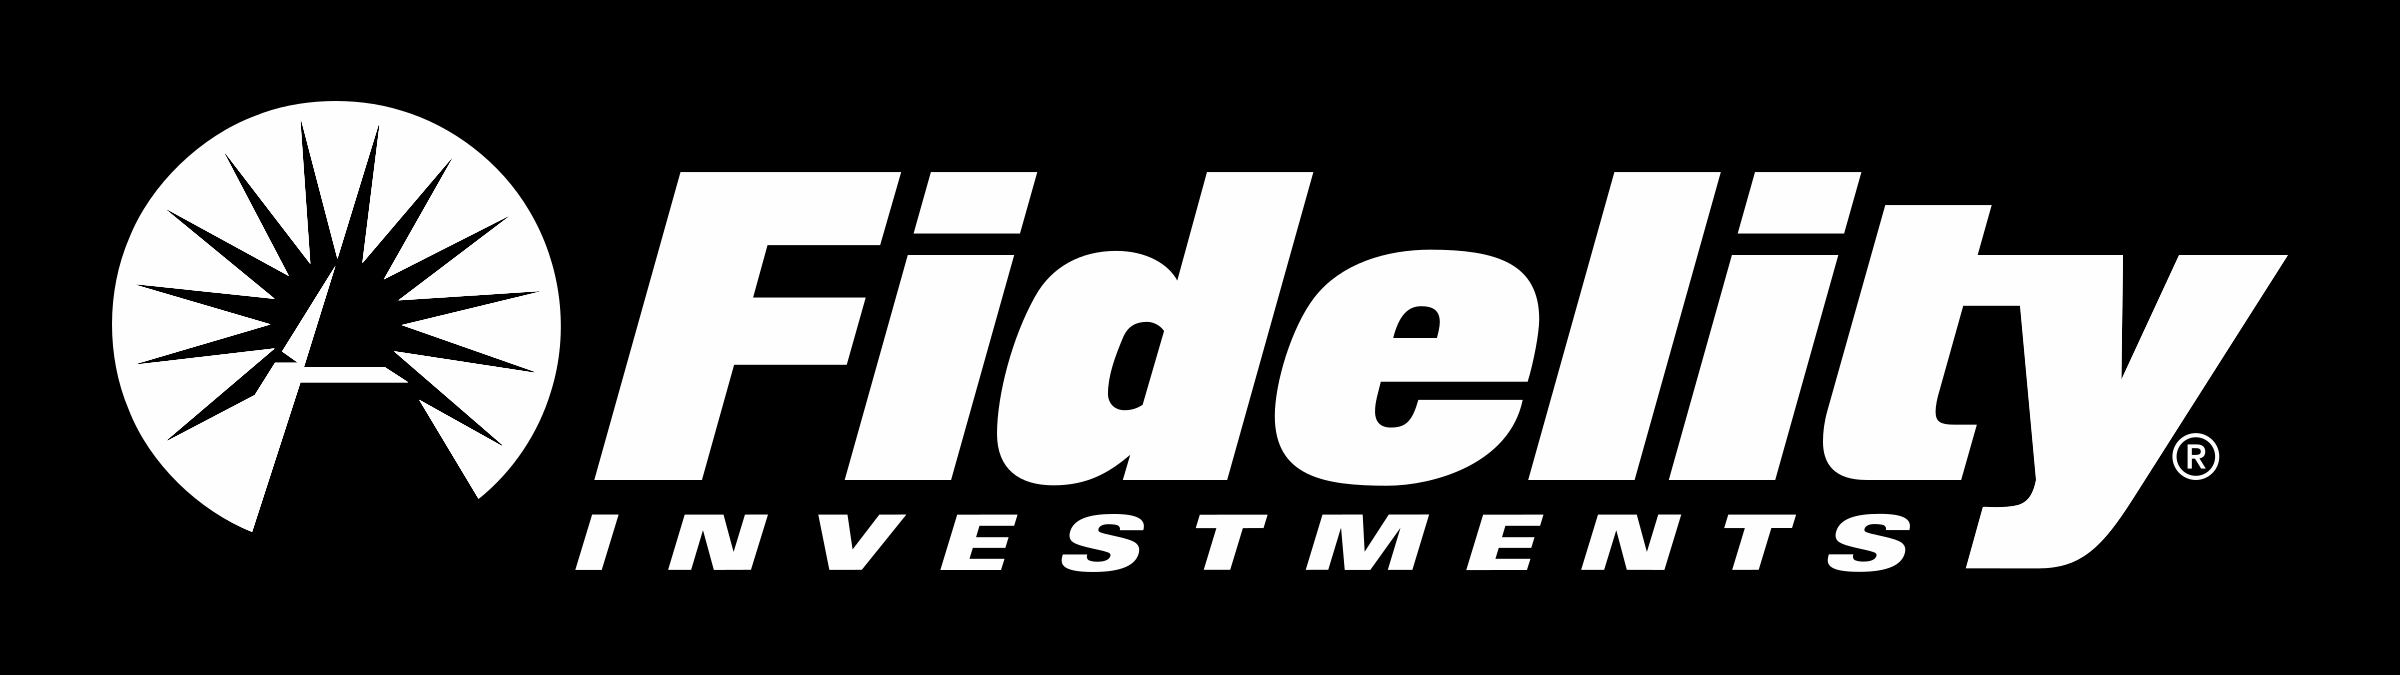 Fidelity Investments Logo PNG Transparent & SVG Vector.